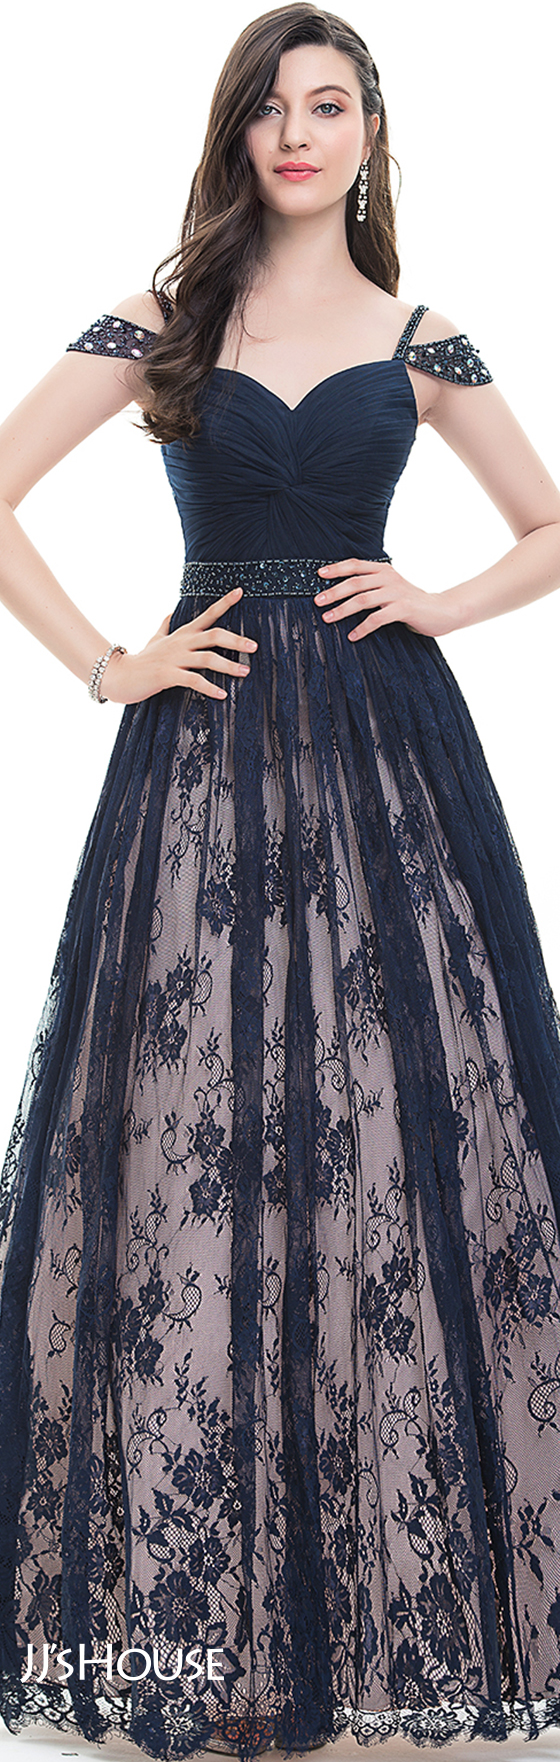 Ballgown sweetheart floorlength lace prom dresses with ruffle